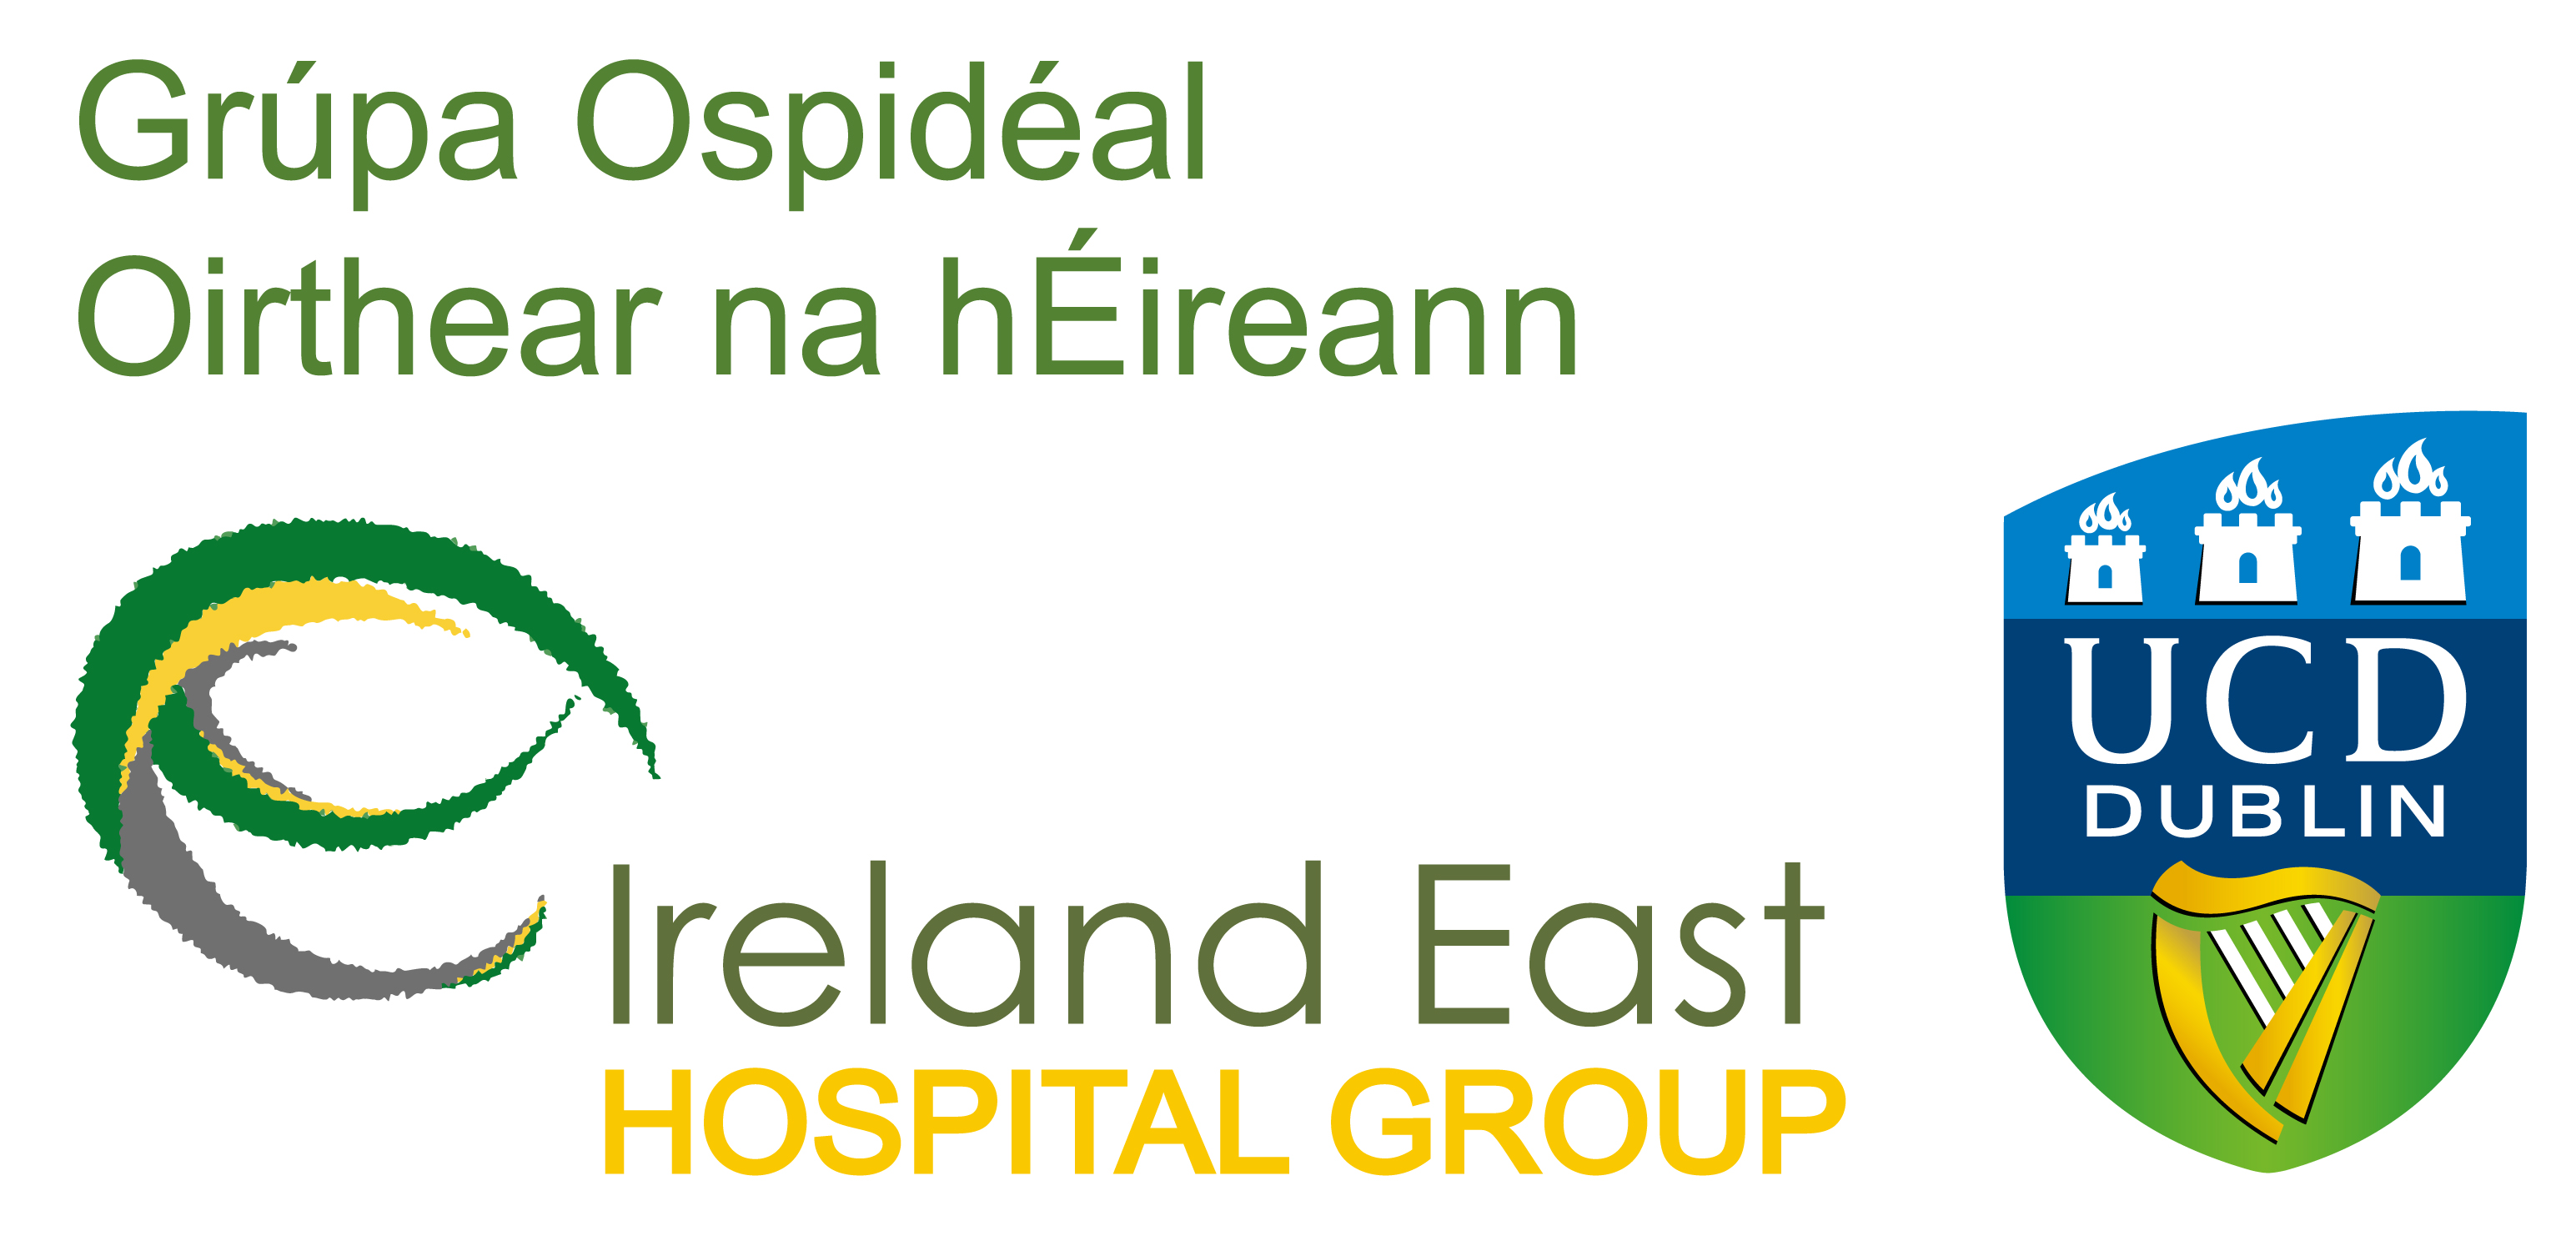 Map Of Ireland Hospitals.Ireland East Hospital Group Iehg